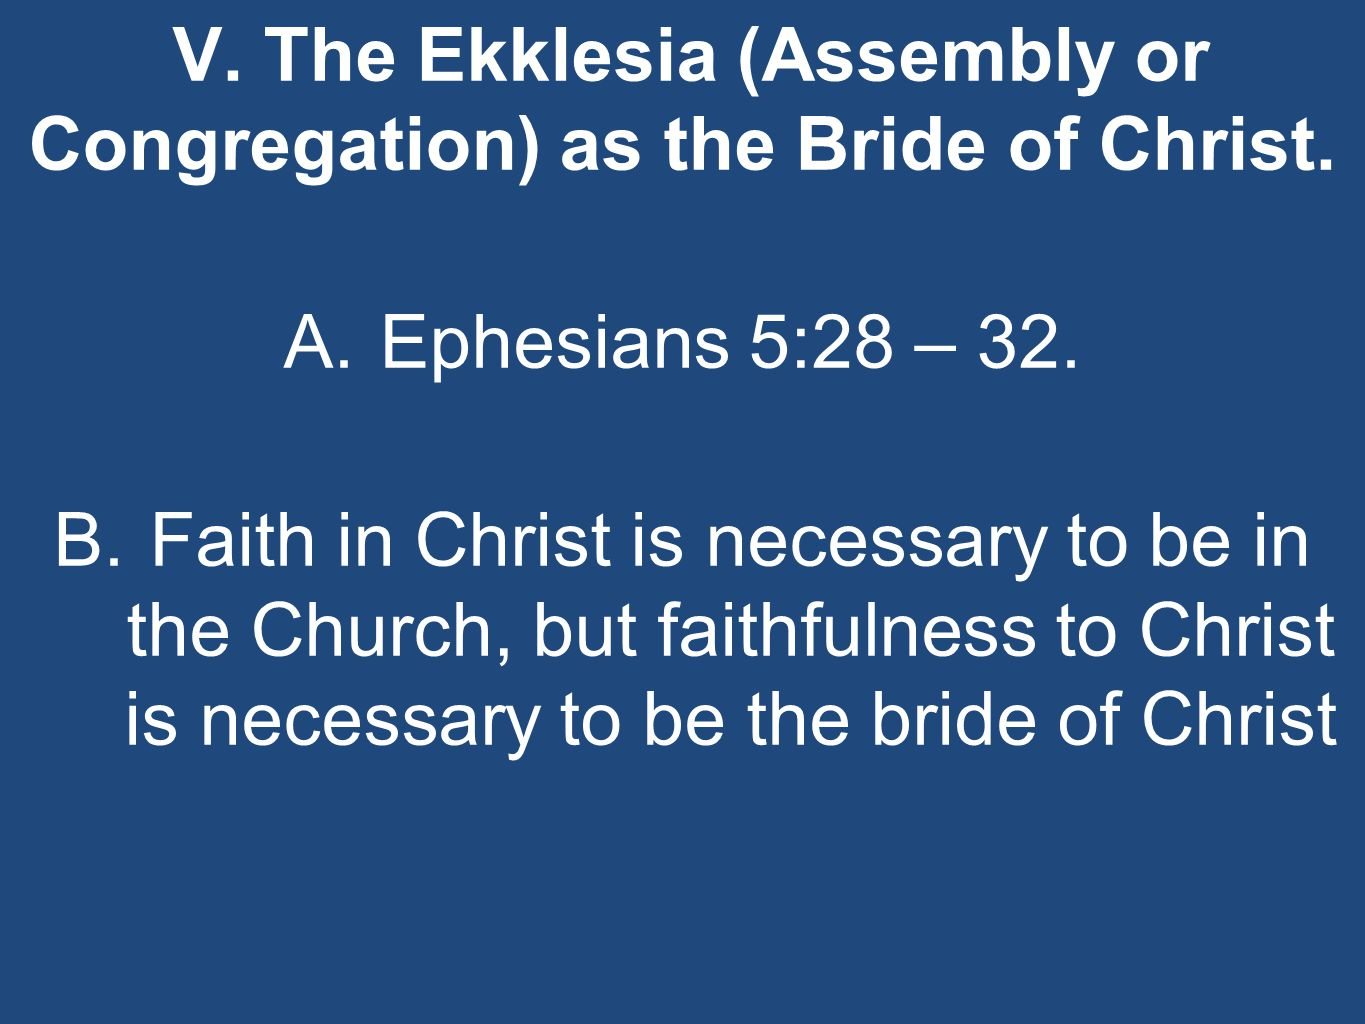 V. The Ekklesia (Assembly or Congregation) as the Bride of Christ.